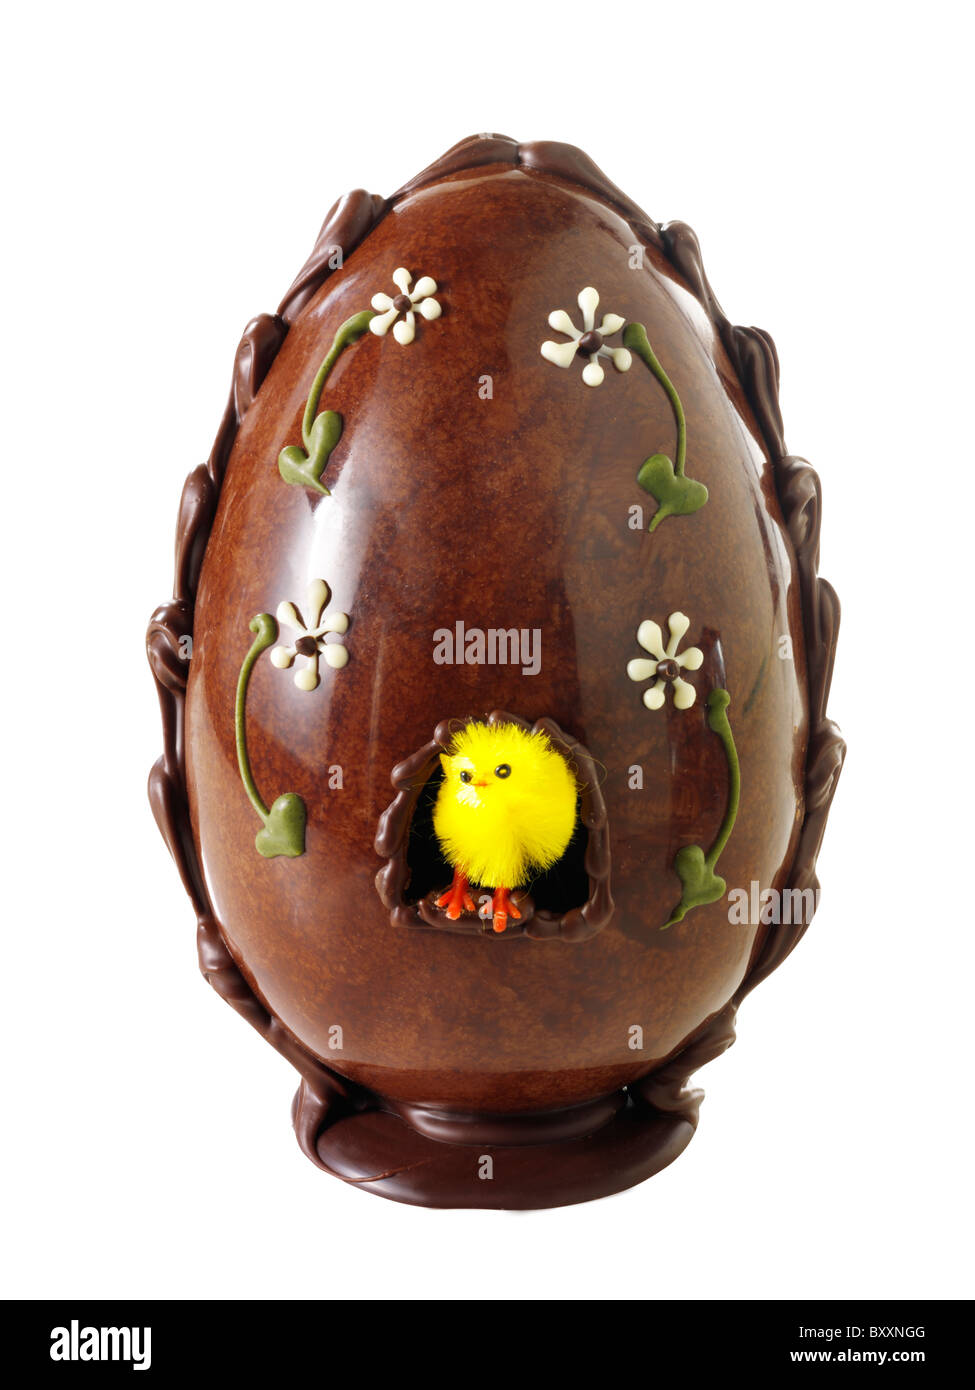 Easter Candy Eggs: Traditional Decorated Chocolate Easter Eggs Stock Photo